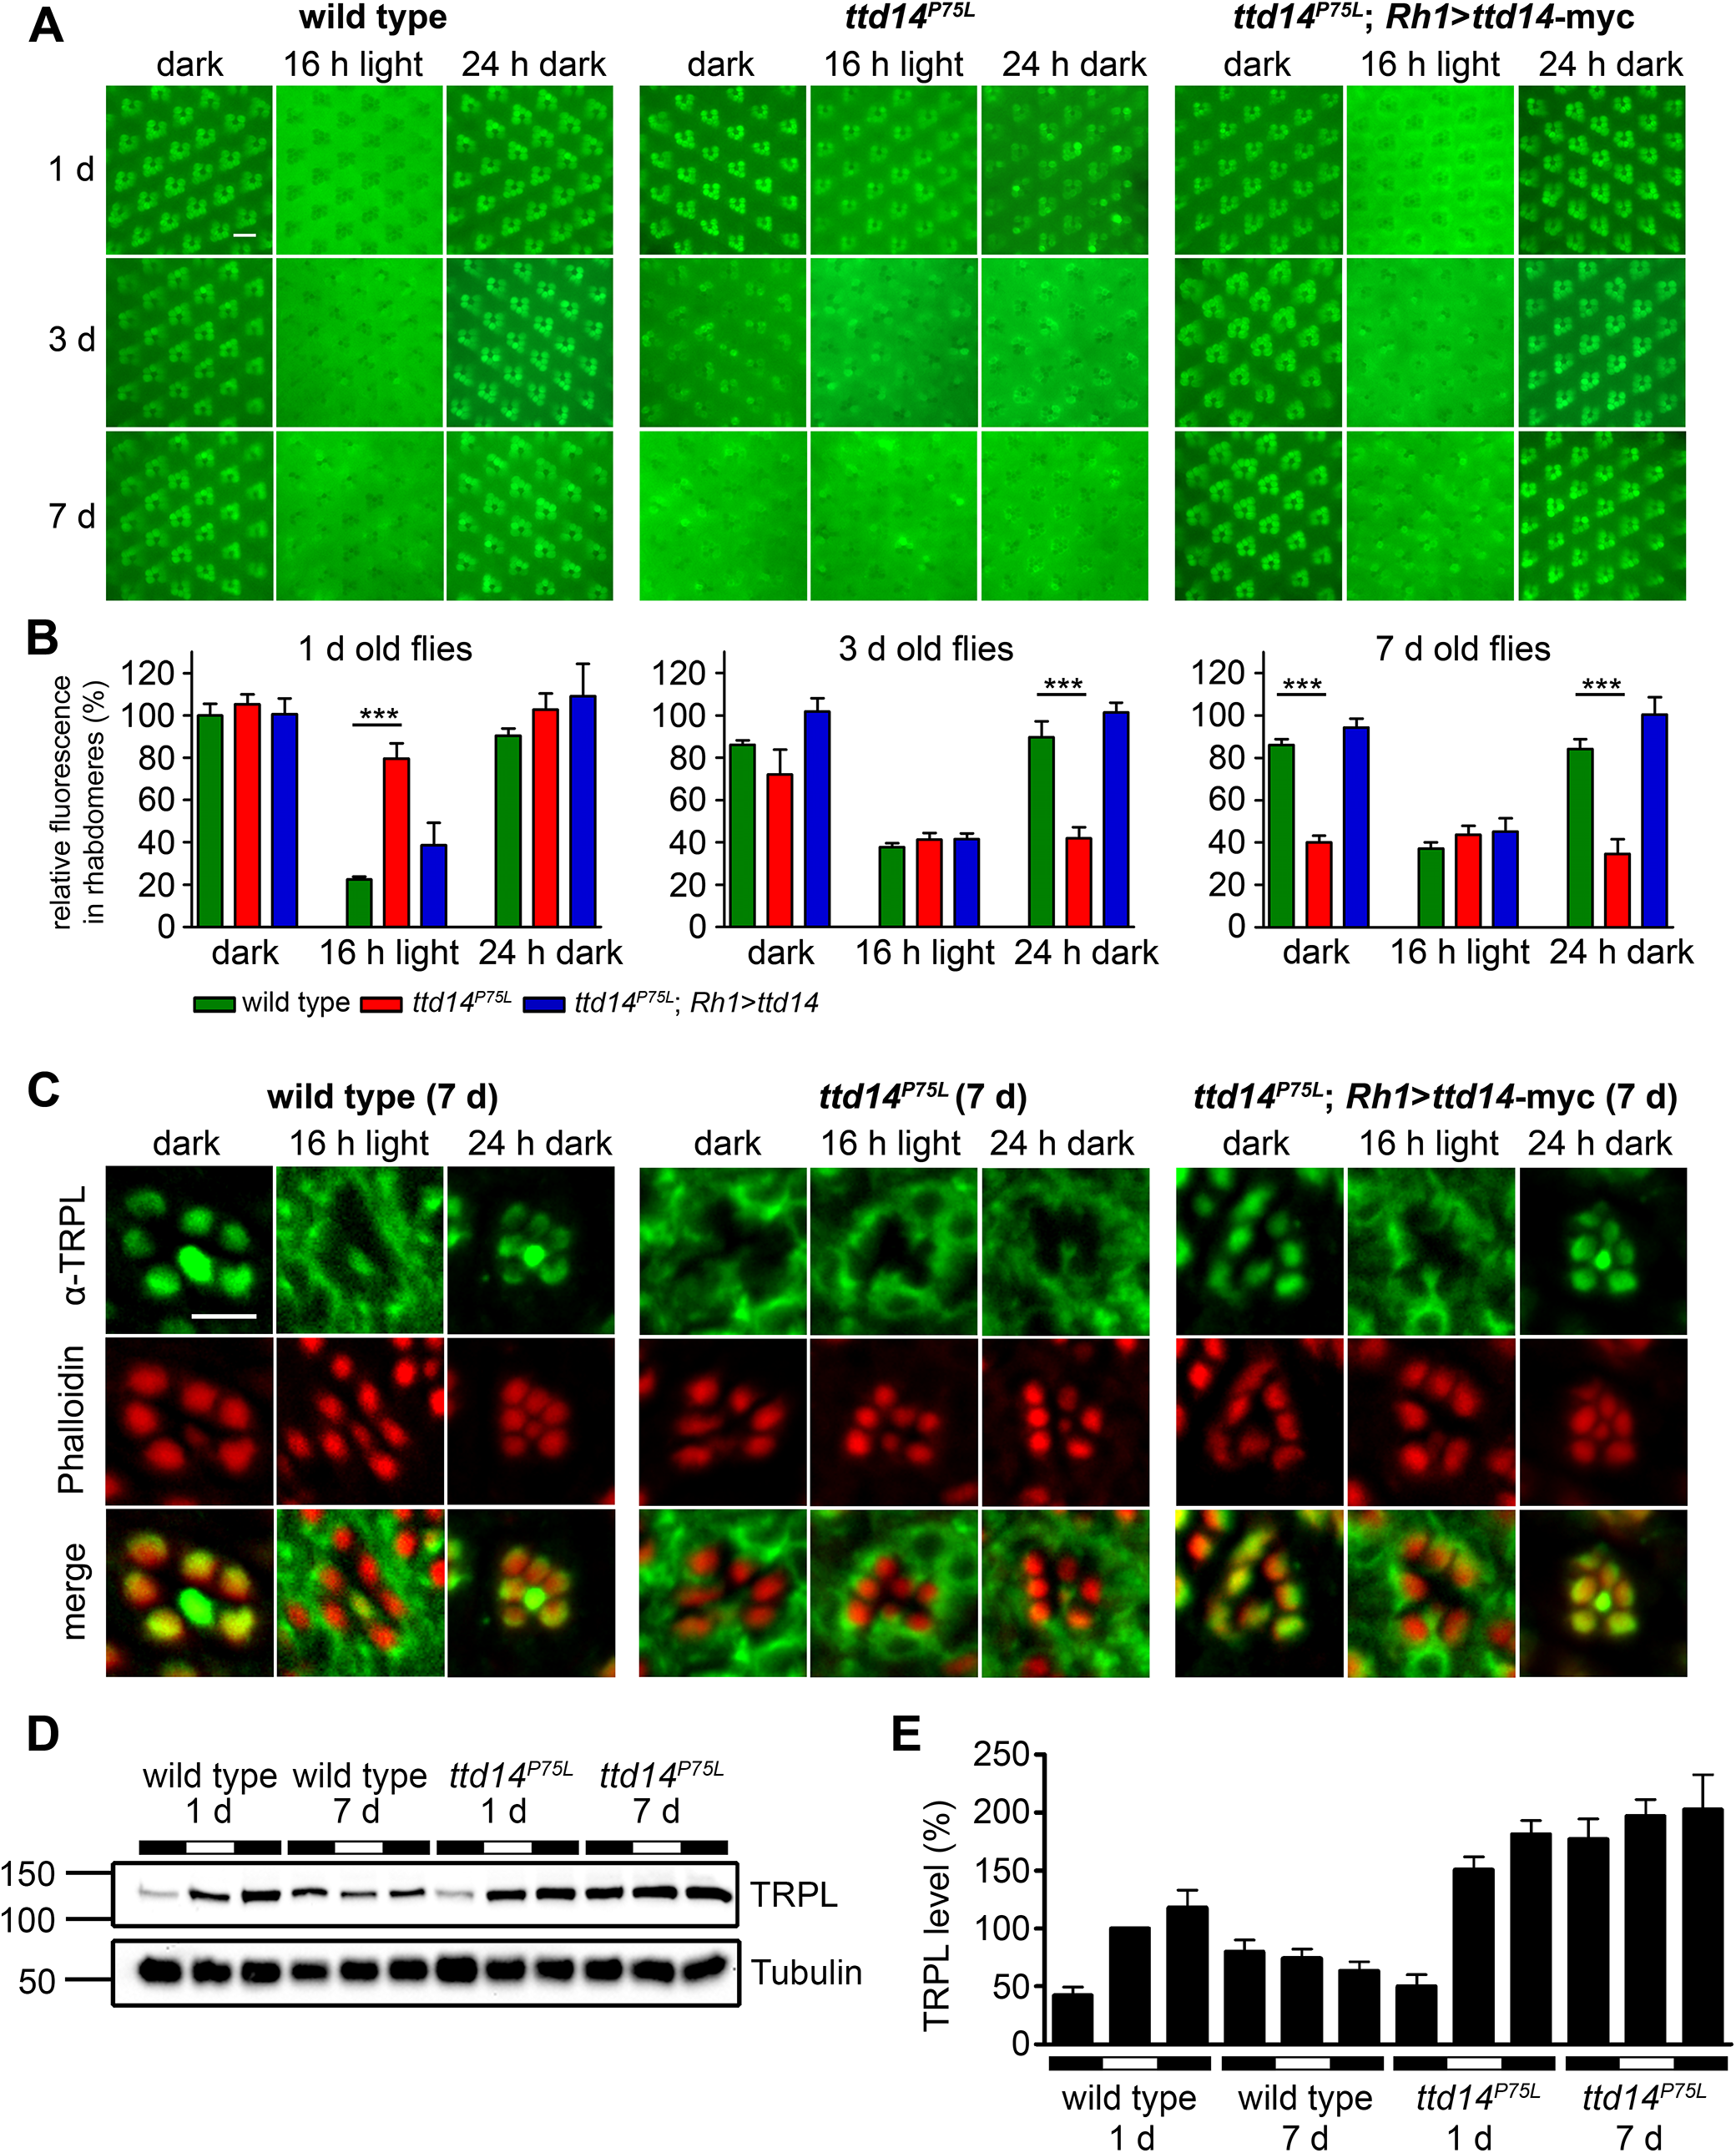 Characterization of the TRPL trafficking defect in the <i>ttd14</i><sup><i>P75L</i></sup> mutant.